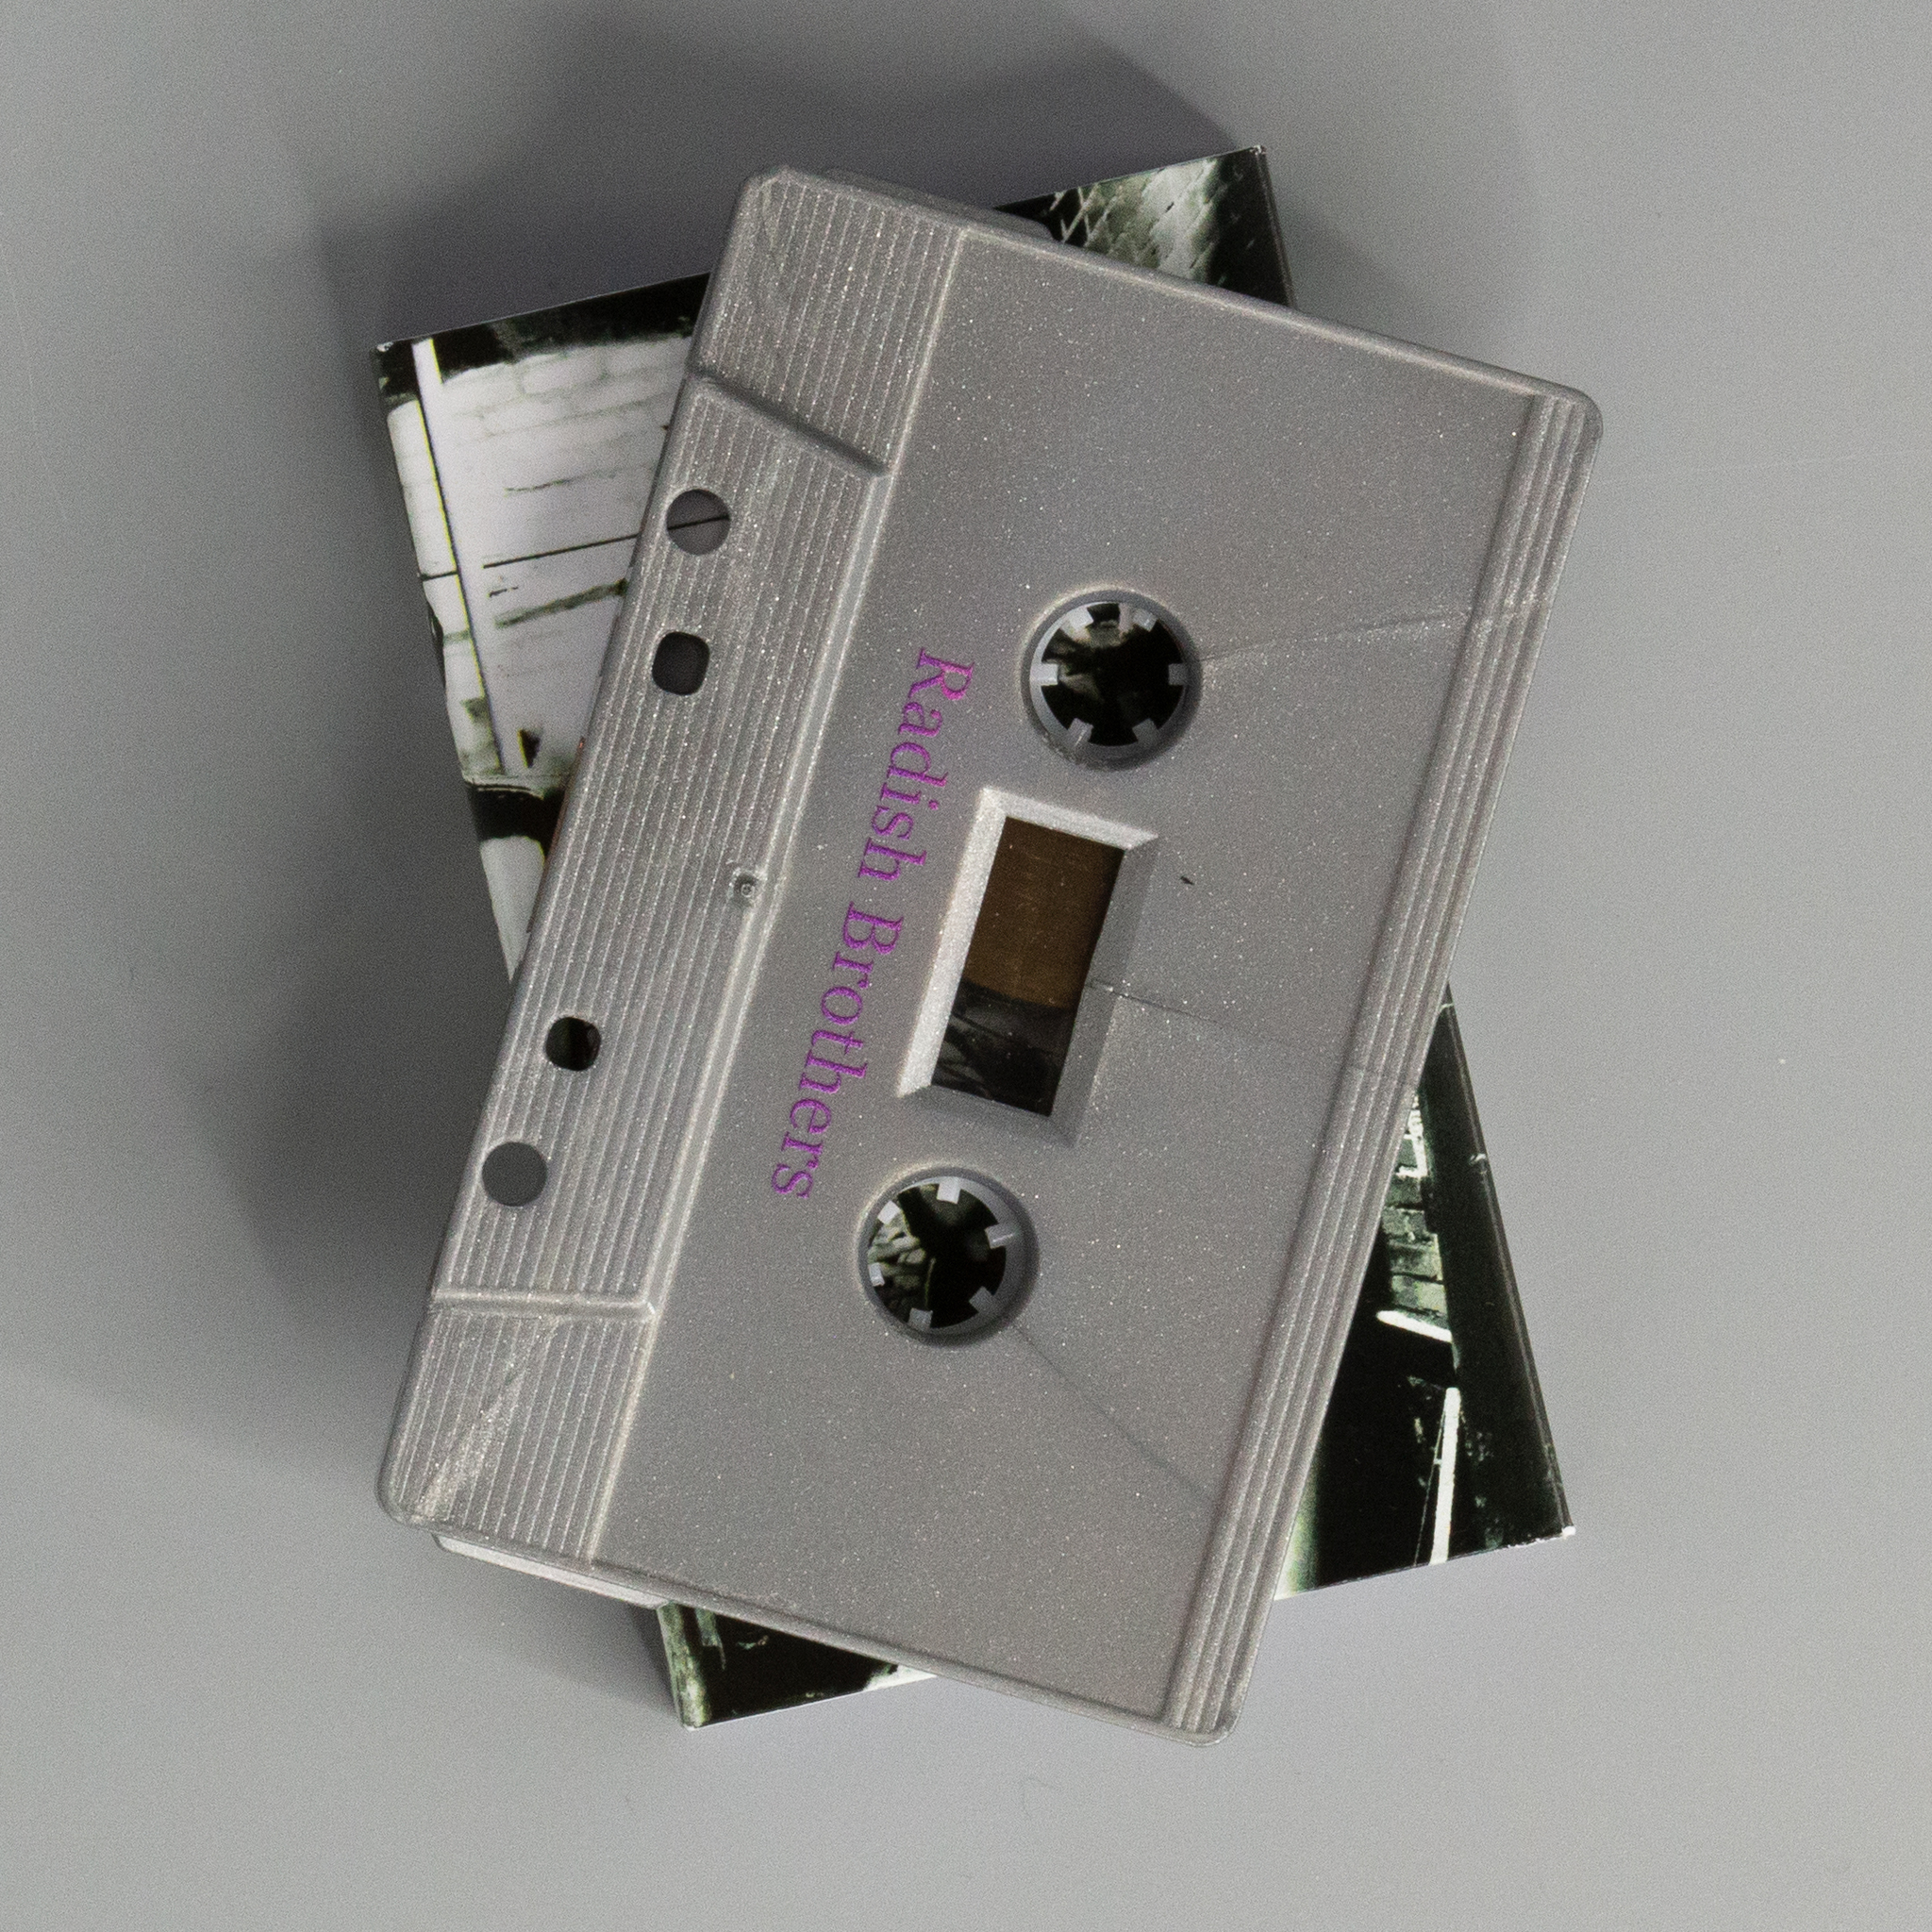 The Chemical Valley Tape